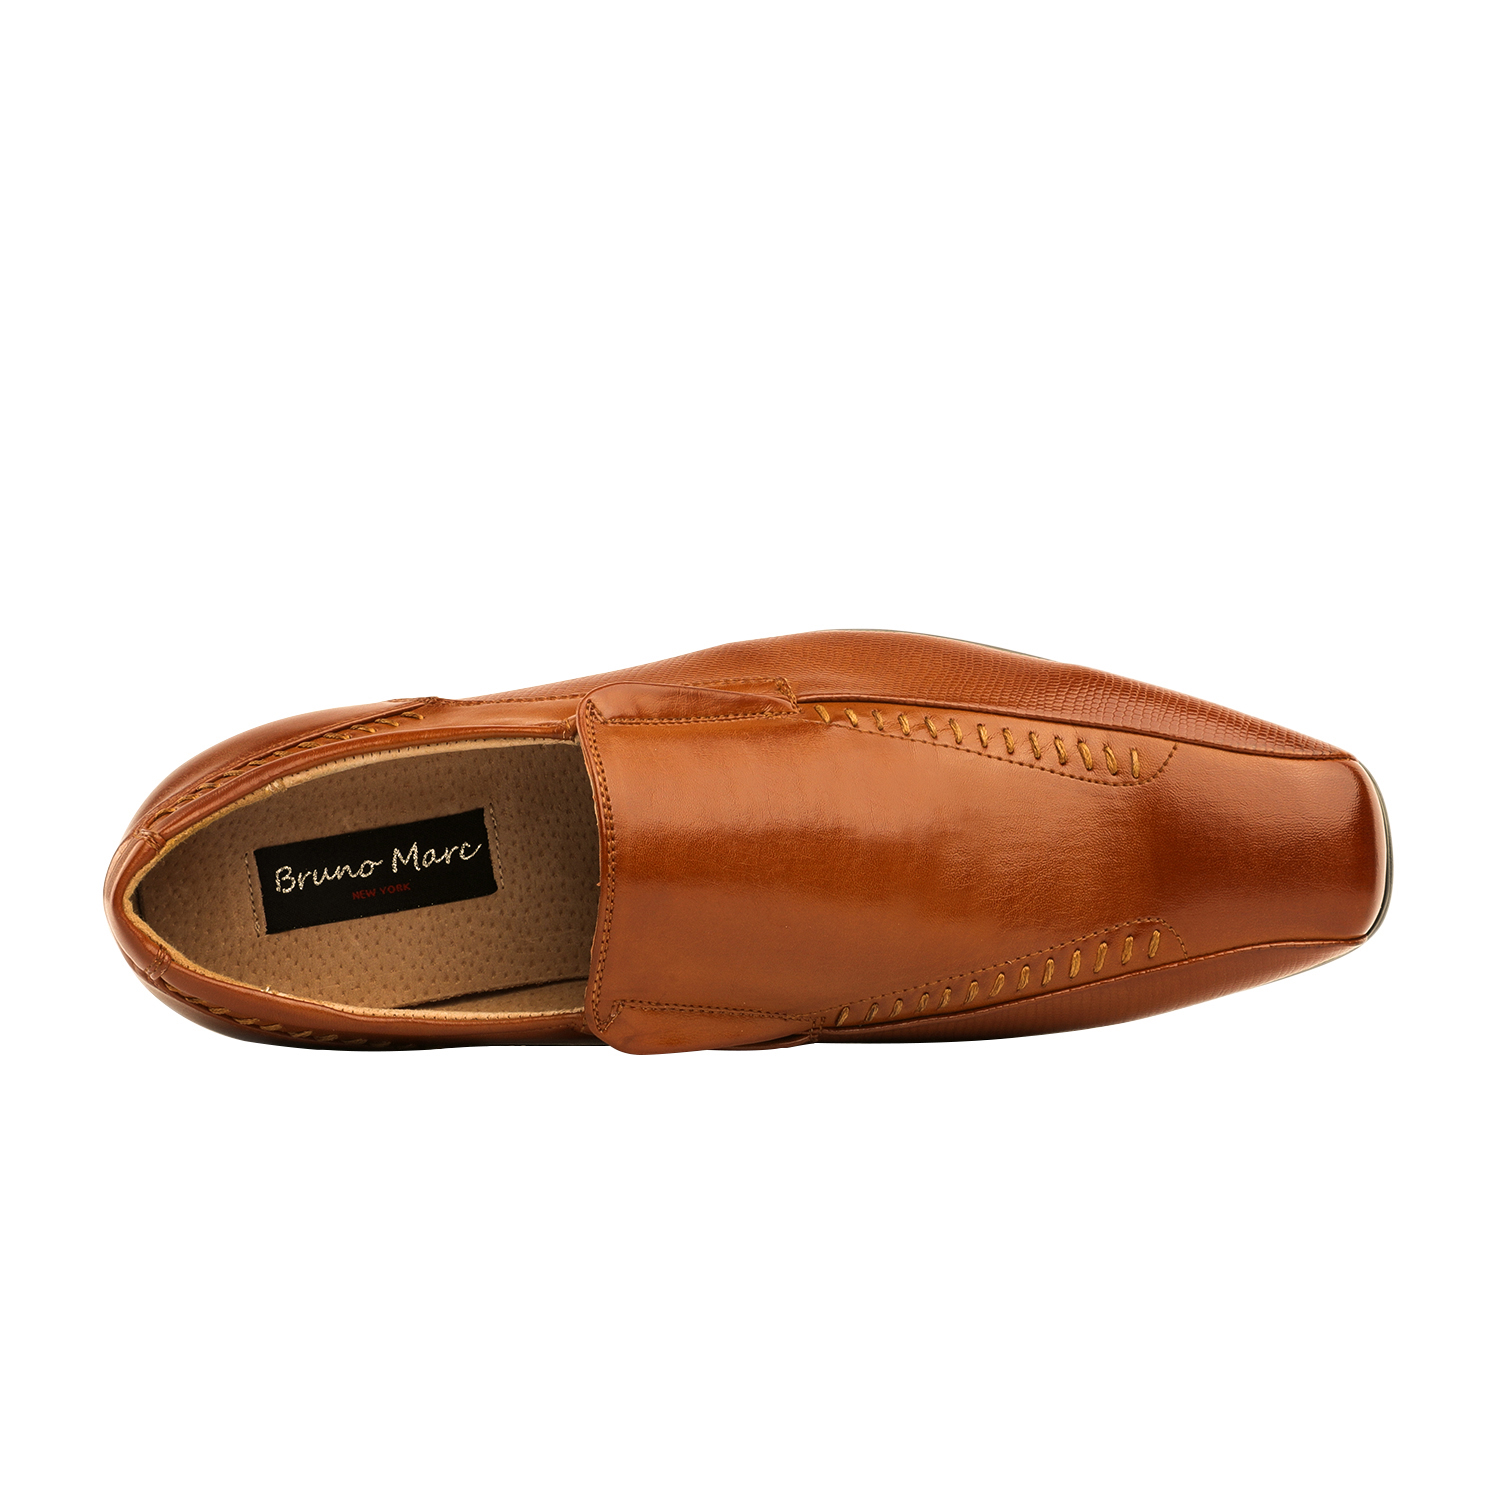 Men/'s Leather Lined Formal Dress Loafers Slip-On Classic Square Toe Shoes